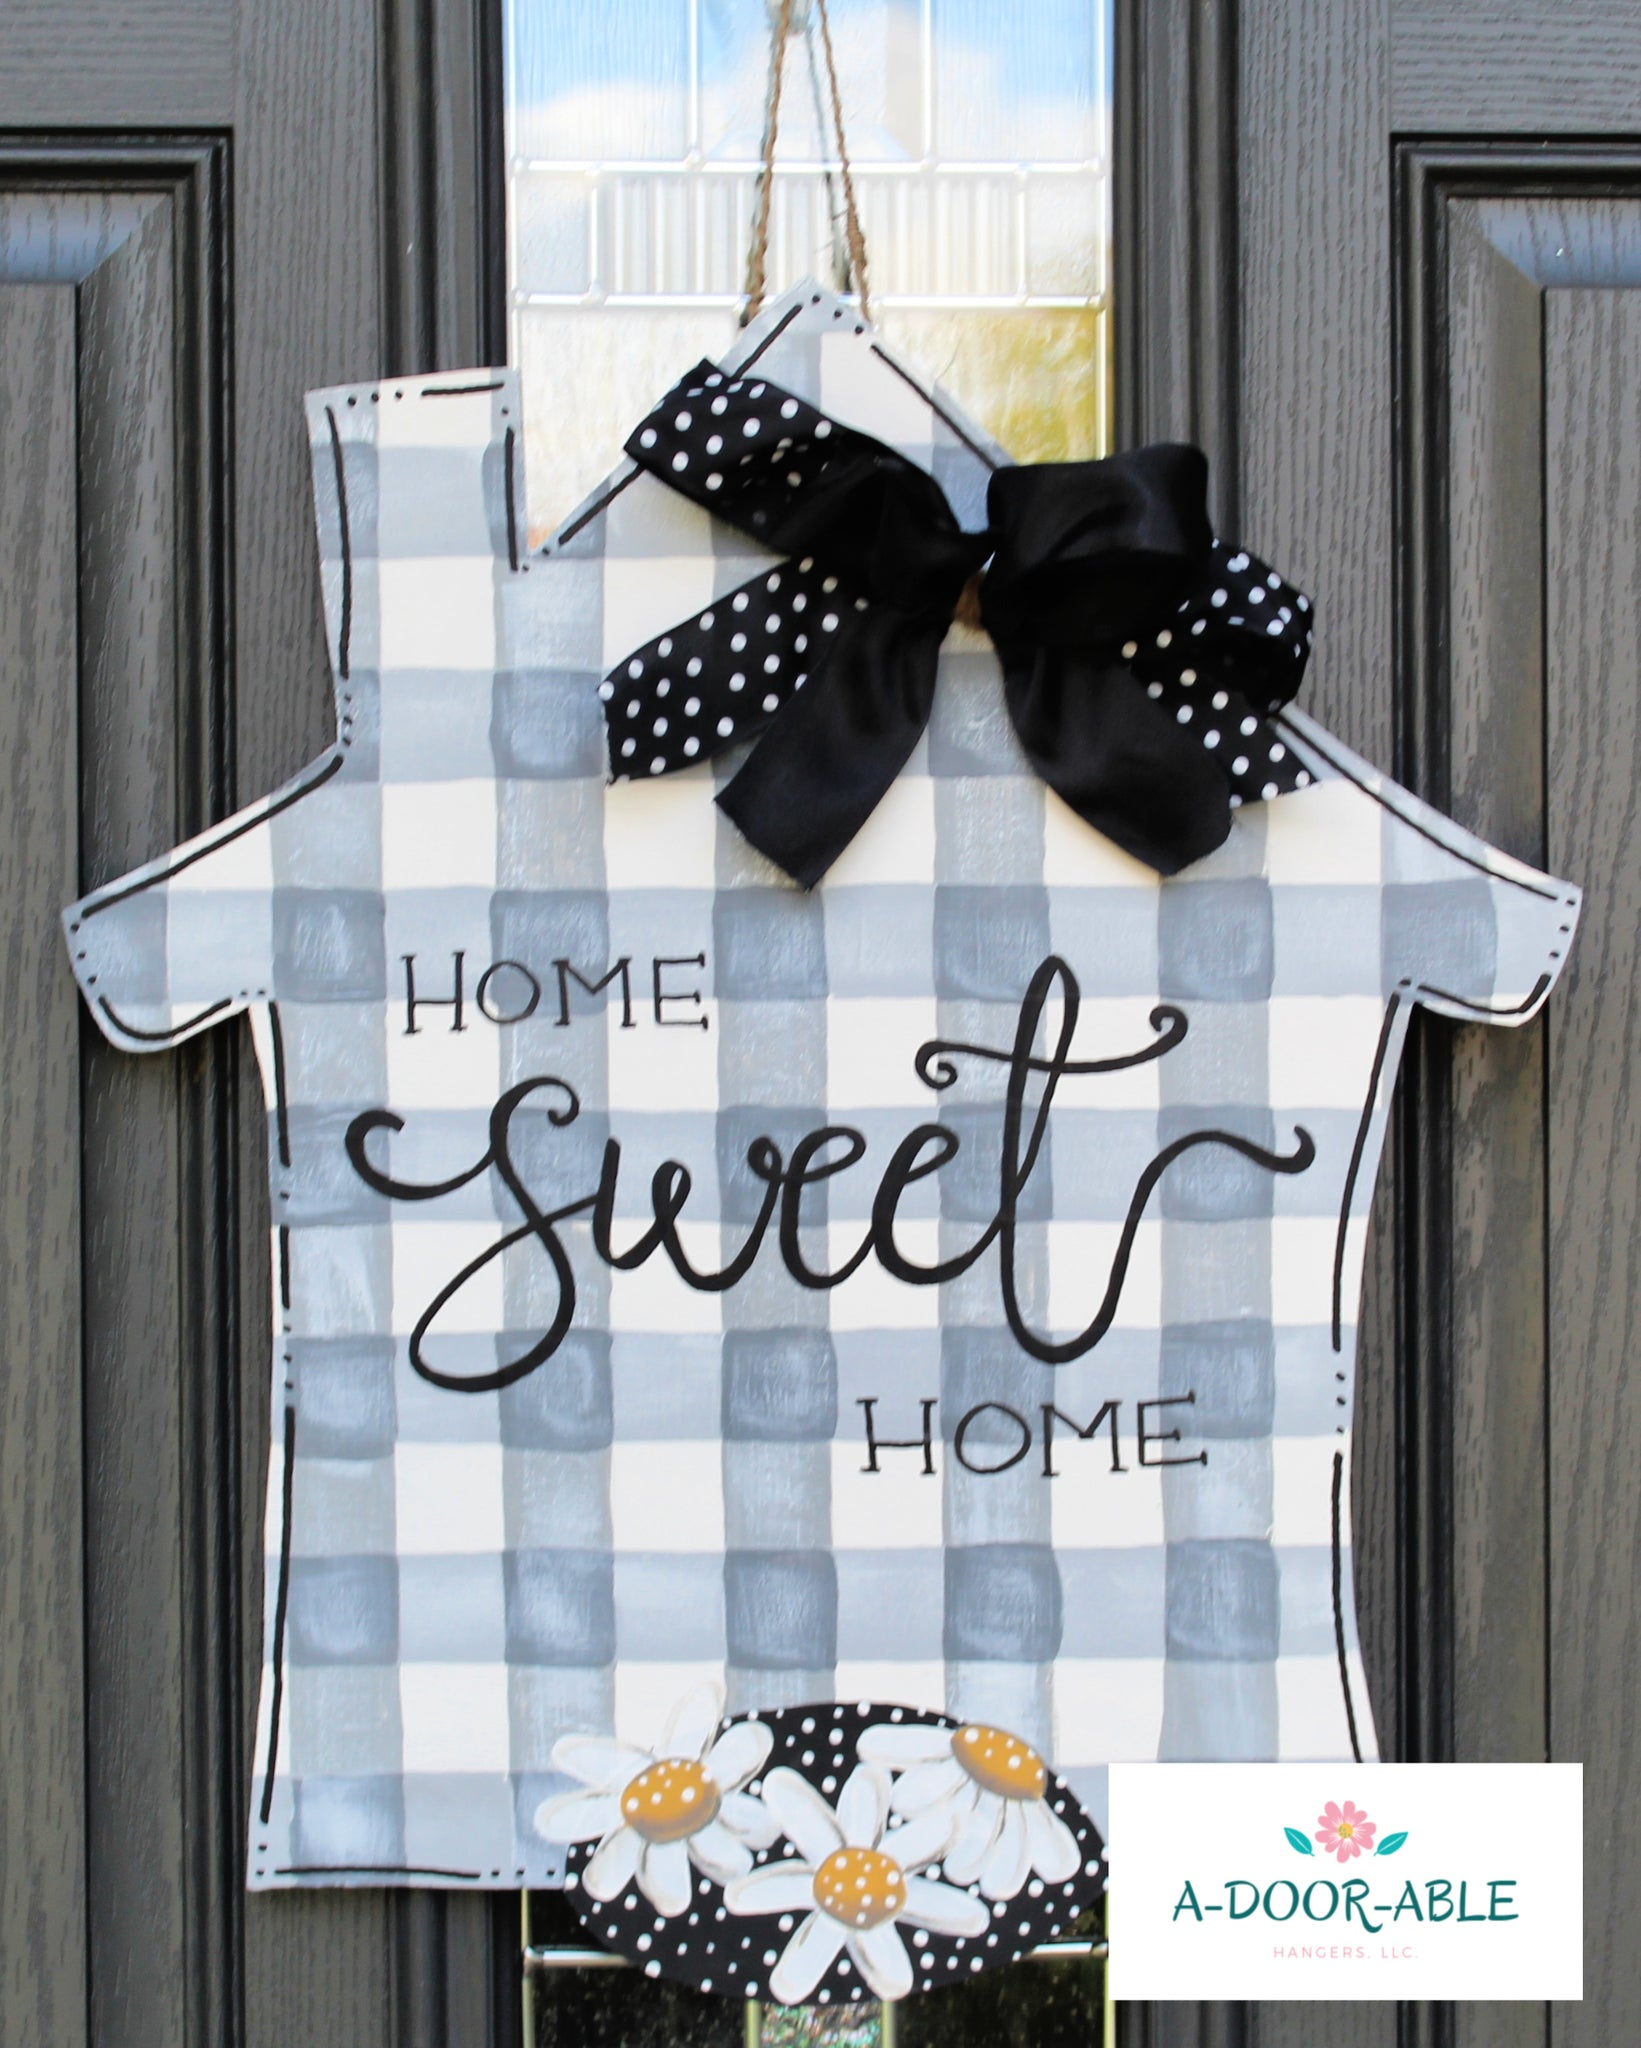 Home Sweet Home House Door Hanger